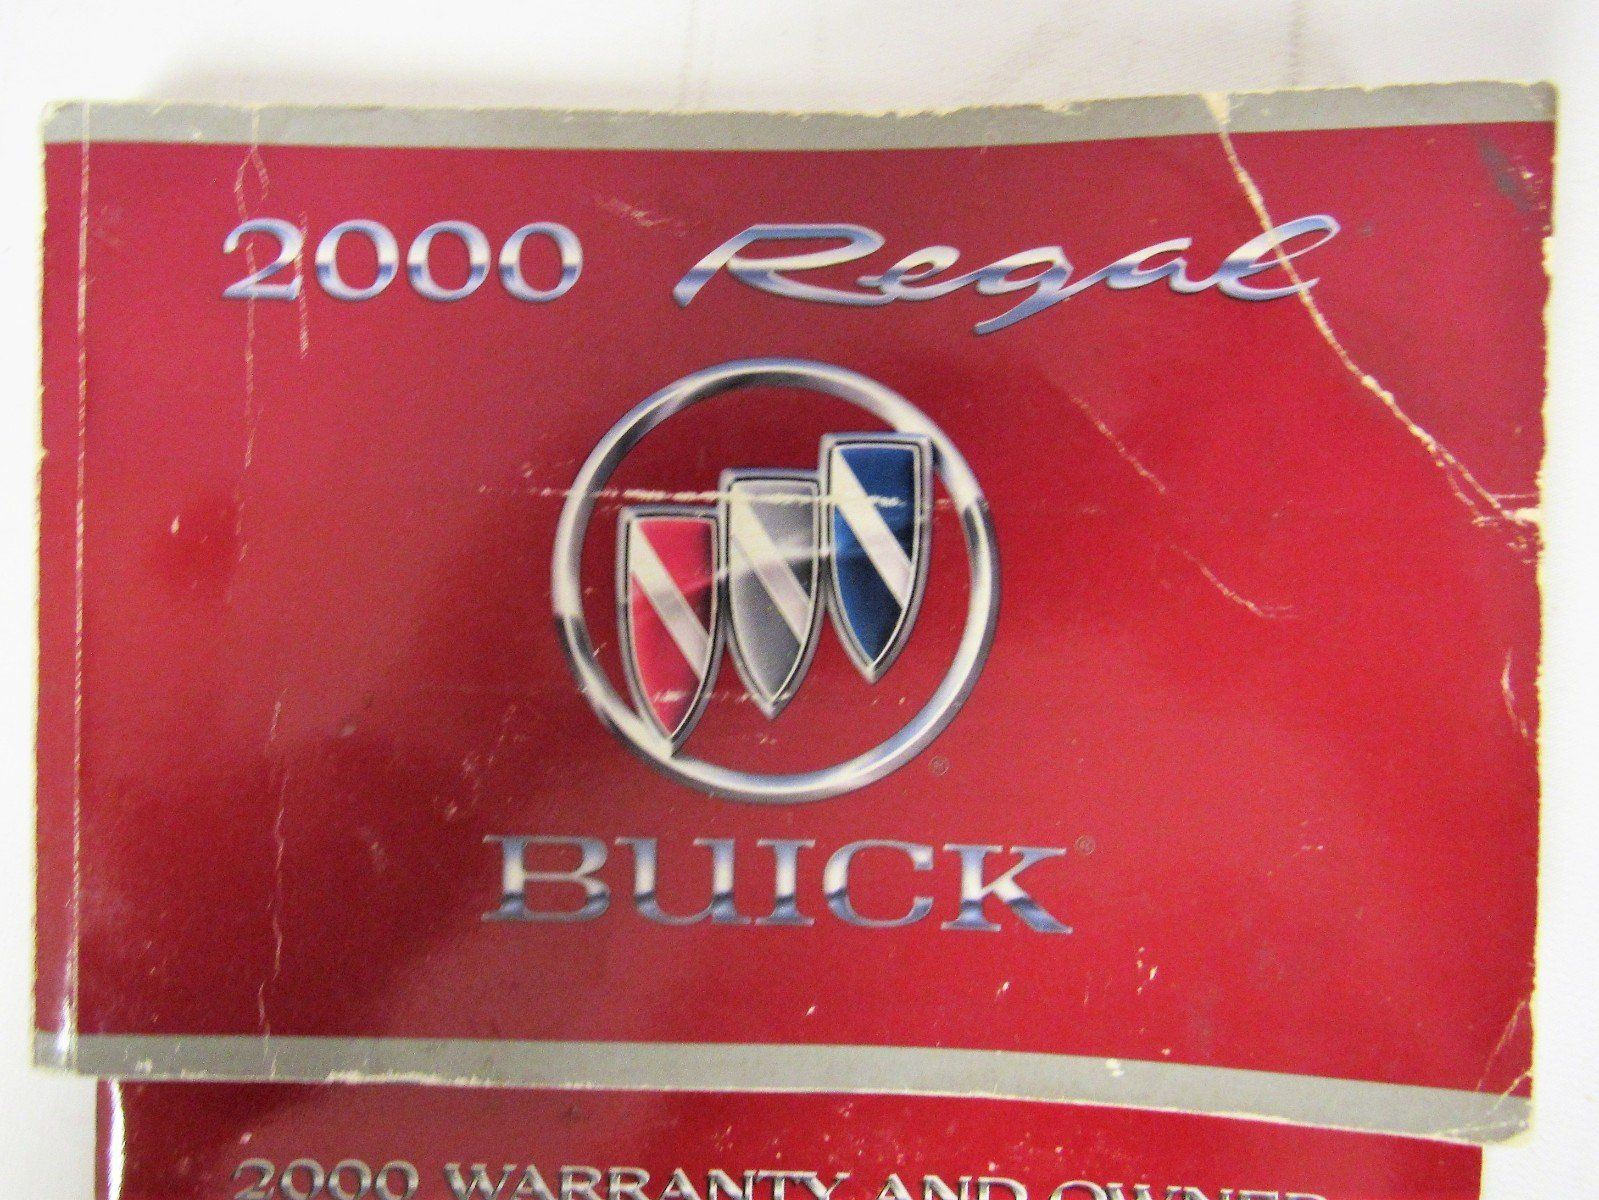 2000 buick regal owners manual guide book amazon com books rh amazon com 2000 buick regal ls owners manual 2000 buick regal ls owners manual